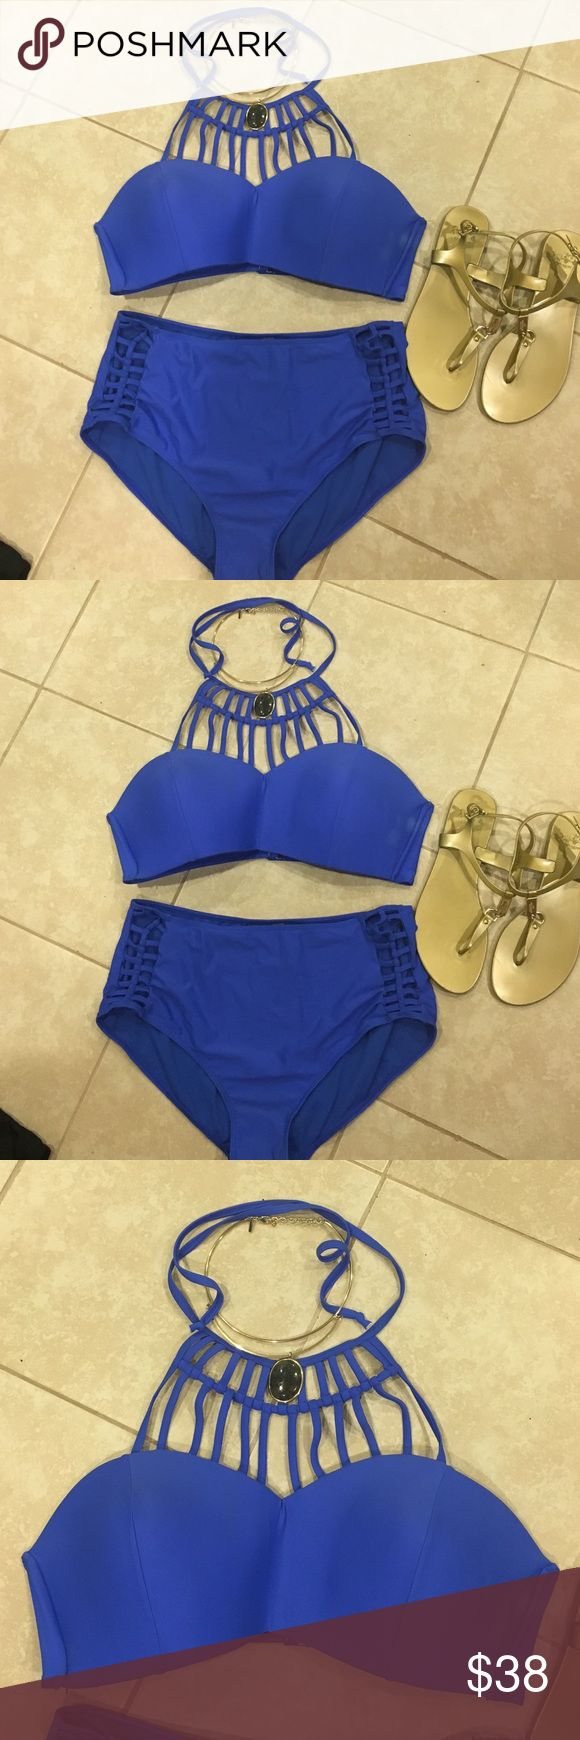 Blue bikini bathing suits PRICE AS FIRM 2 piece halter top with high wasted top tinibikini Swim Bikinis